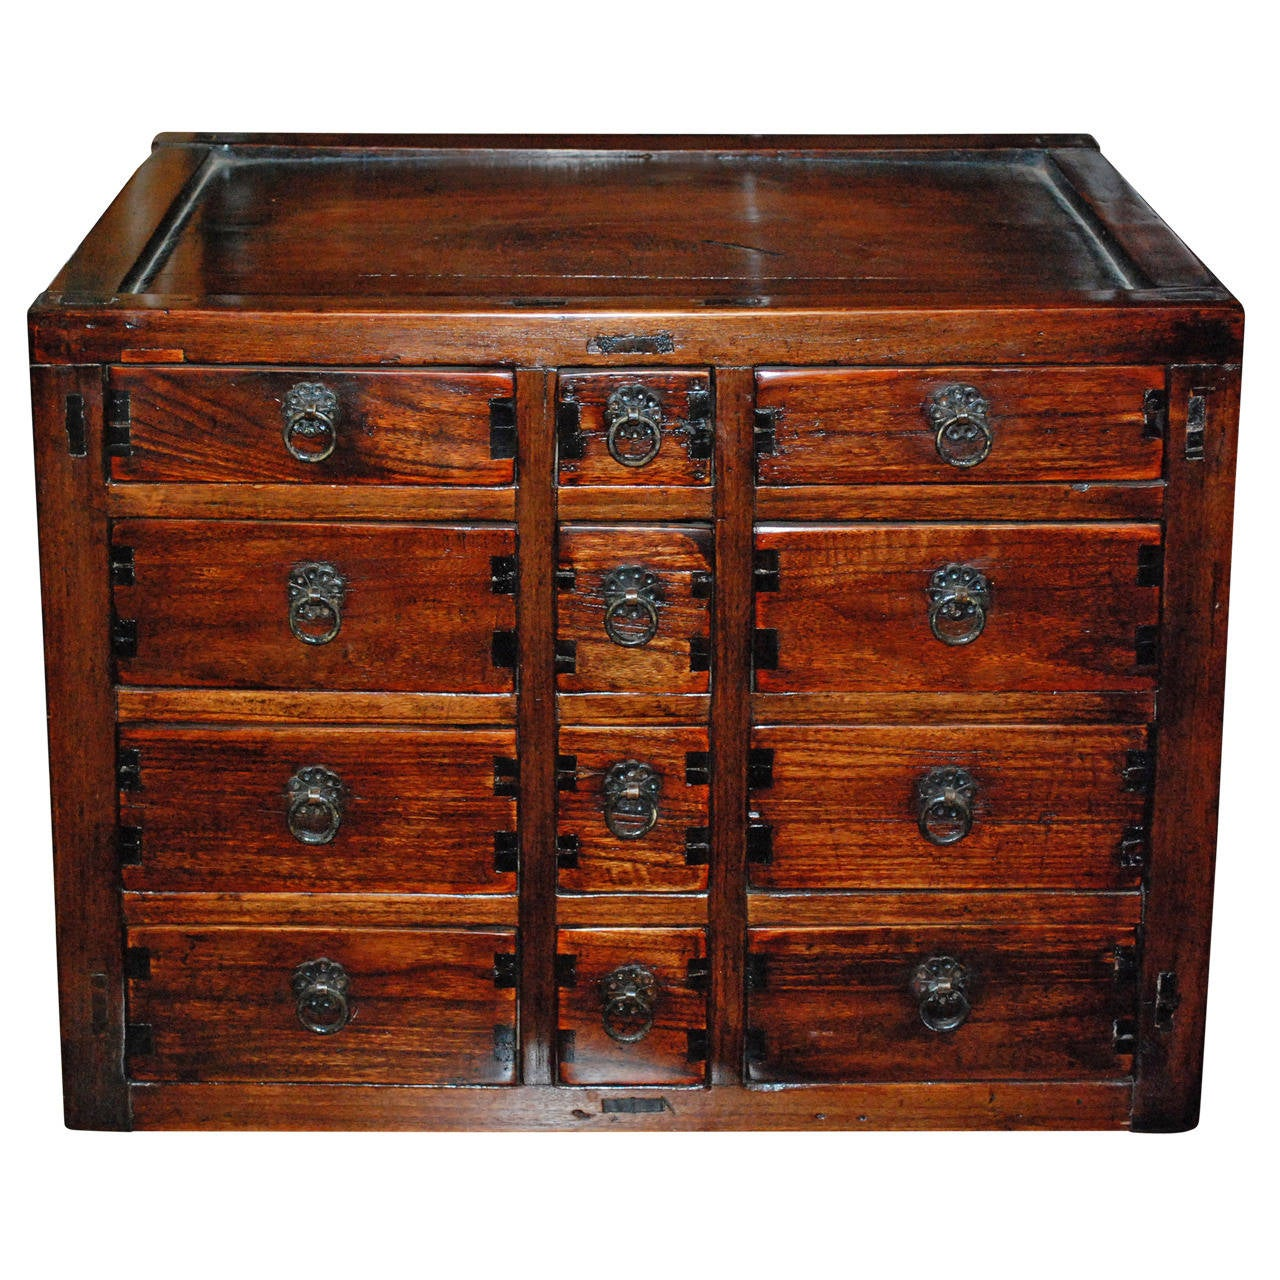 Superieur Miniature Chinese Medicine Cabinet For Sale